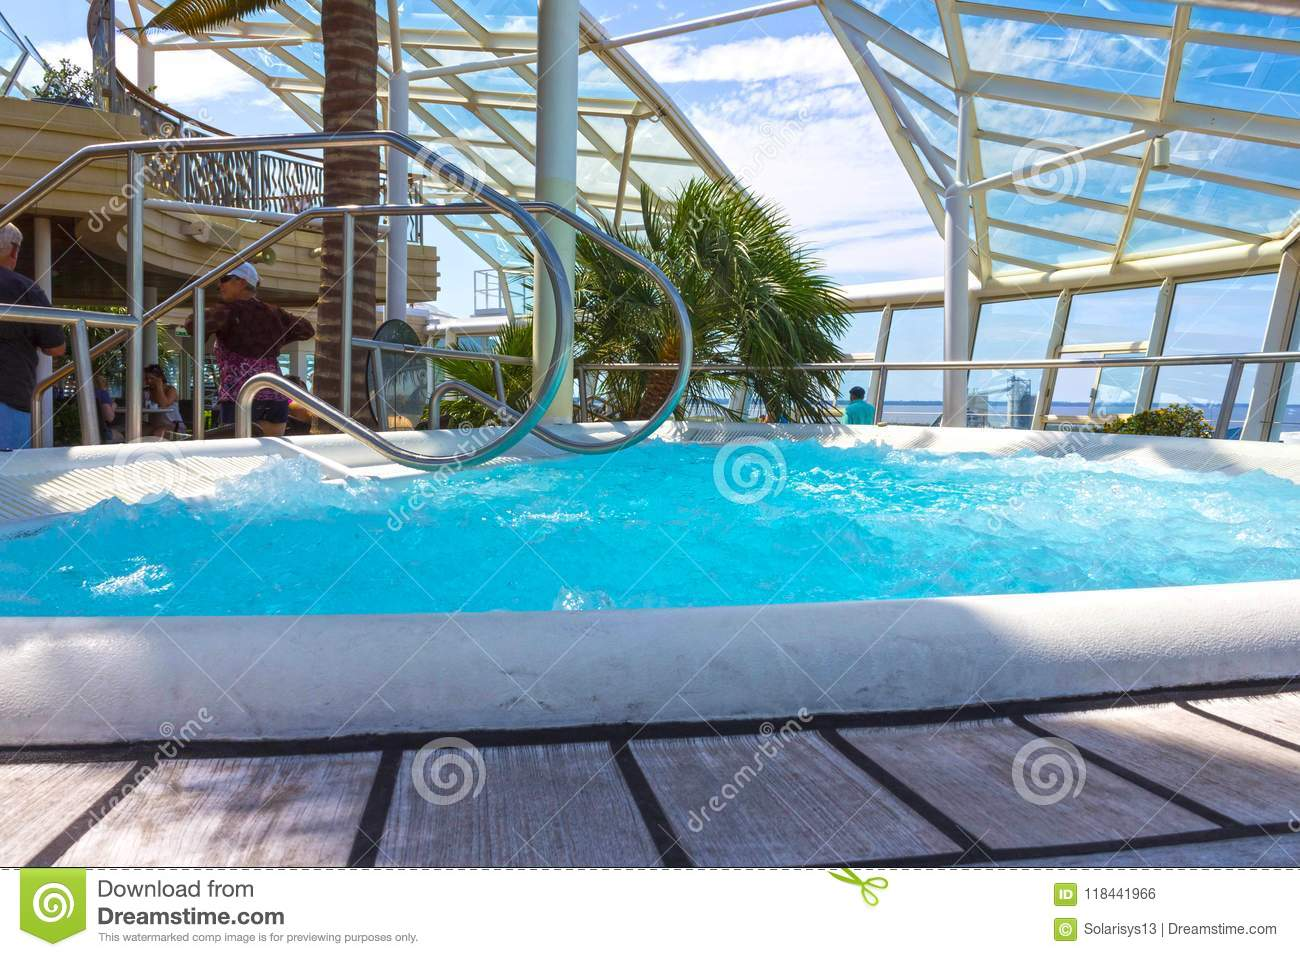 Cape Canaveral, USA - April 29, 2018: The People Rest In The Jacuzzi ...